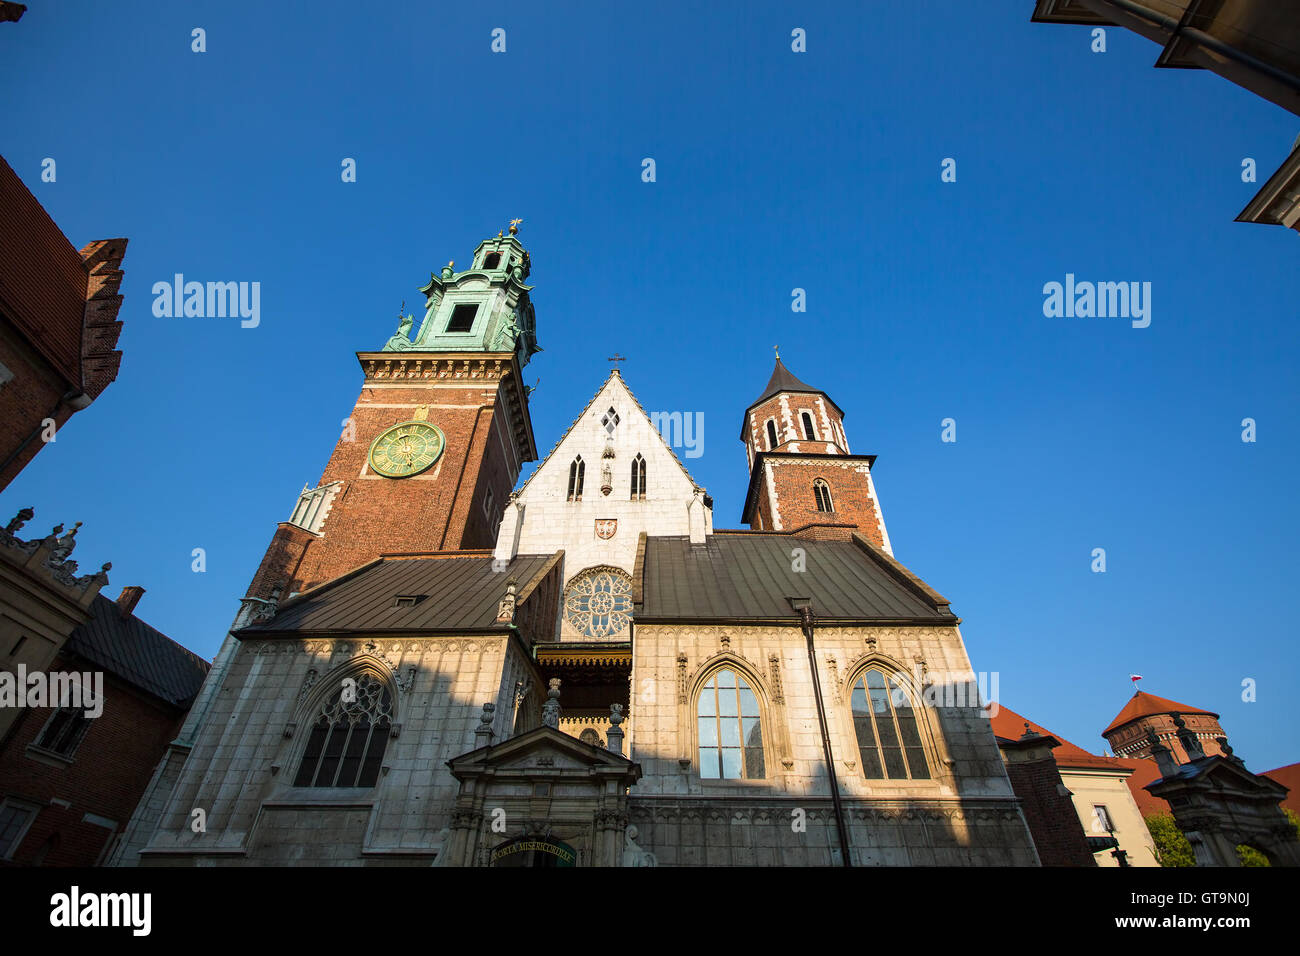 Wawel castle with cathedral in Krakow, Poland. - Stock Image